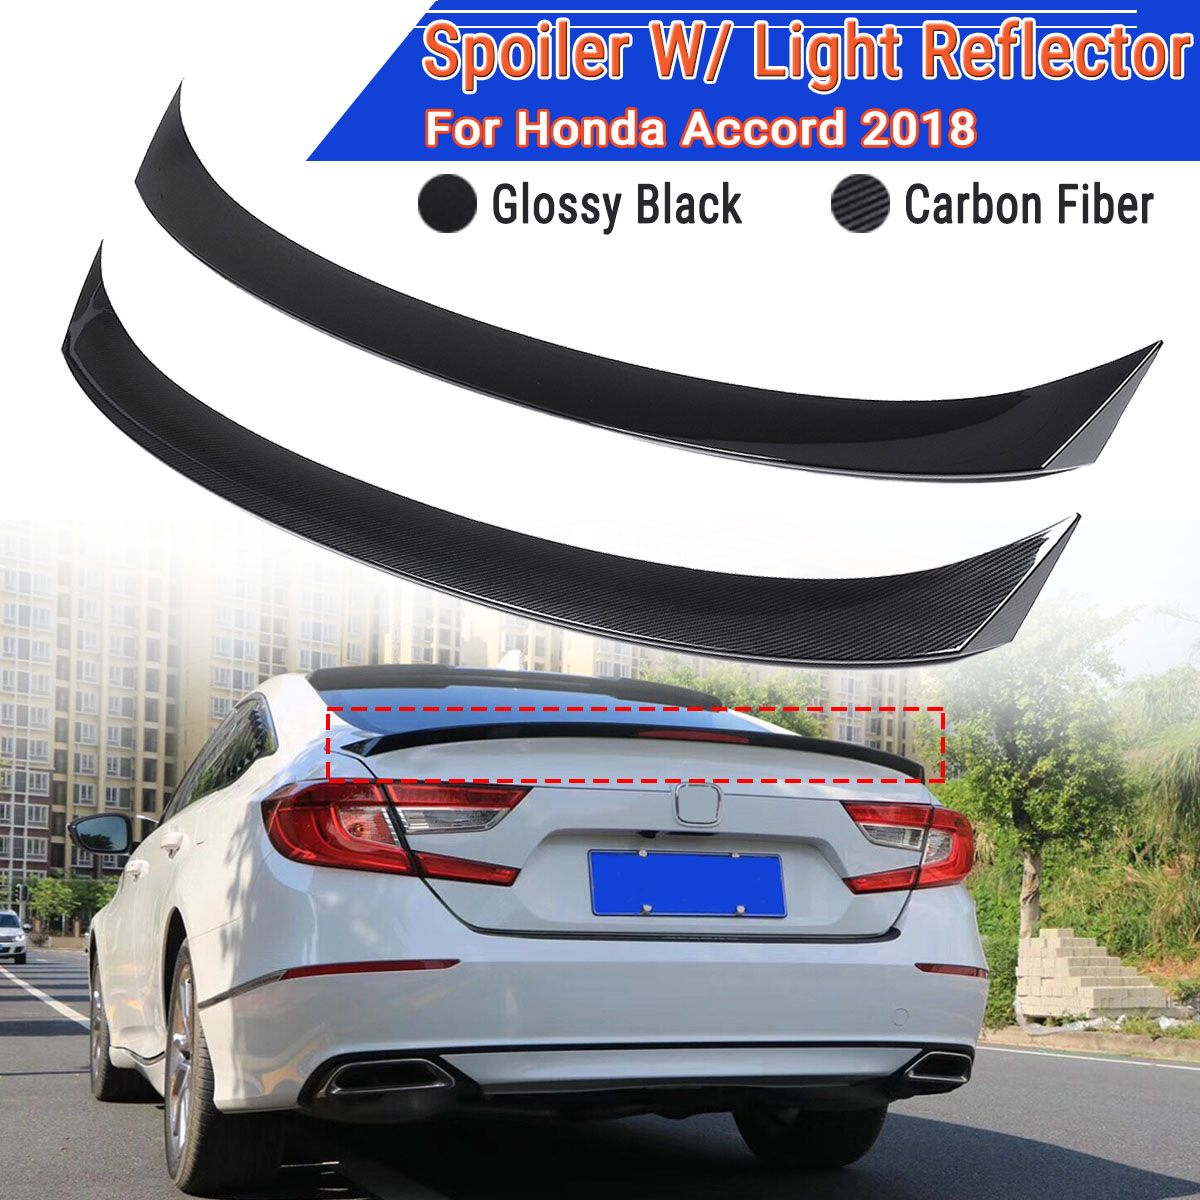 Glossy Black/ Carbon Fiber Color Rear Trunk Lid Spoiler Wing With Light Reflector For Honda For Accord 10th For Sedan 2018Glossy Black/ Carbon Fiber Color Rear Trunk Lid Spoiler Wing With Light Reflector For Honda For Accord 10th For Sedan 2018